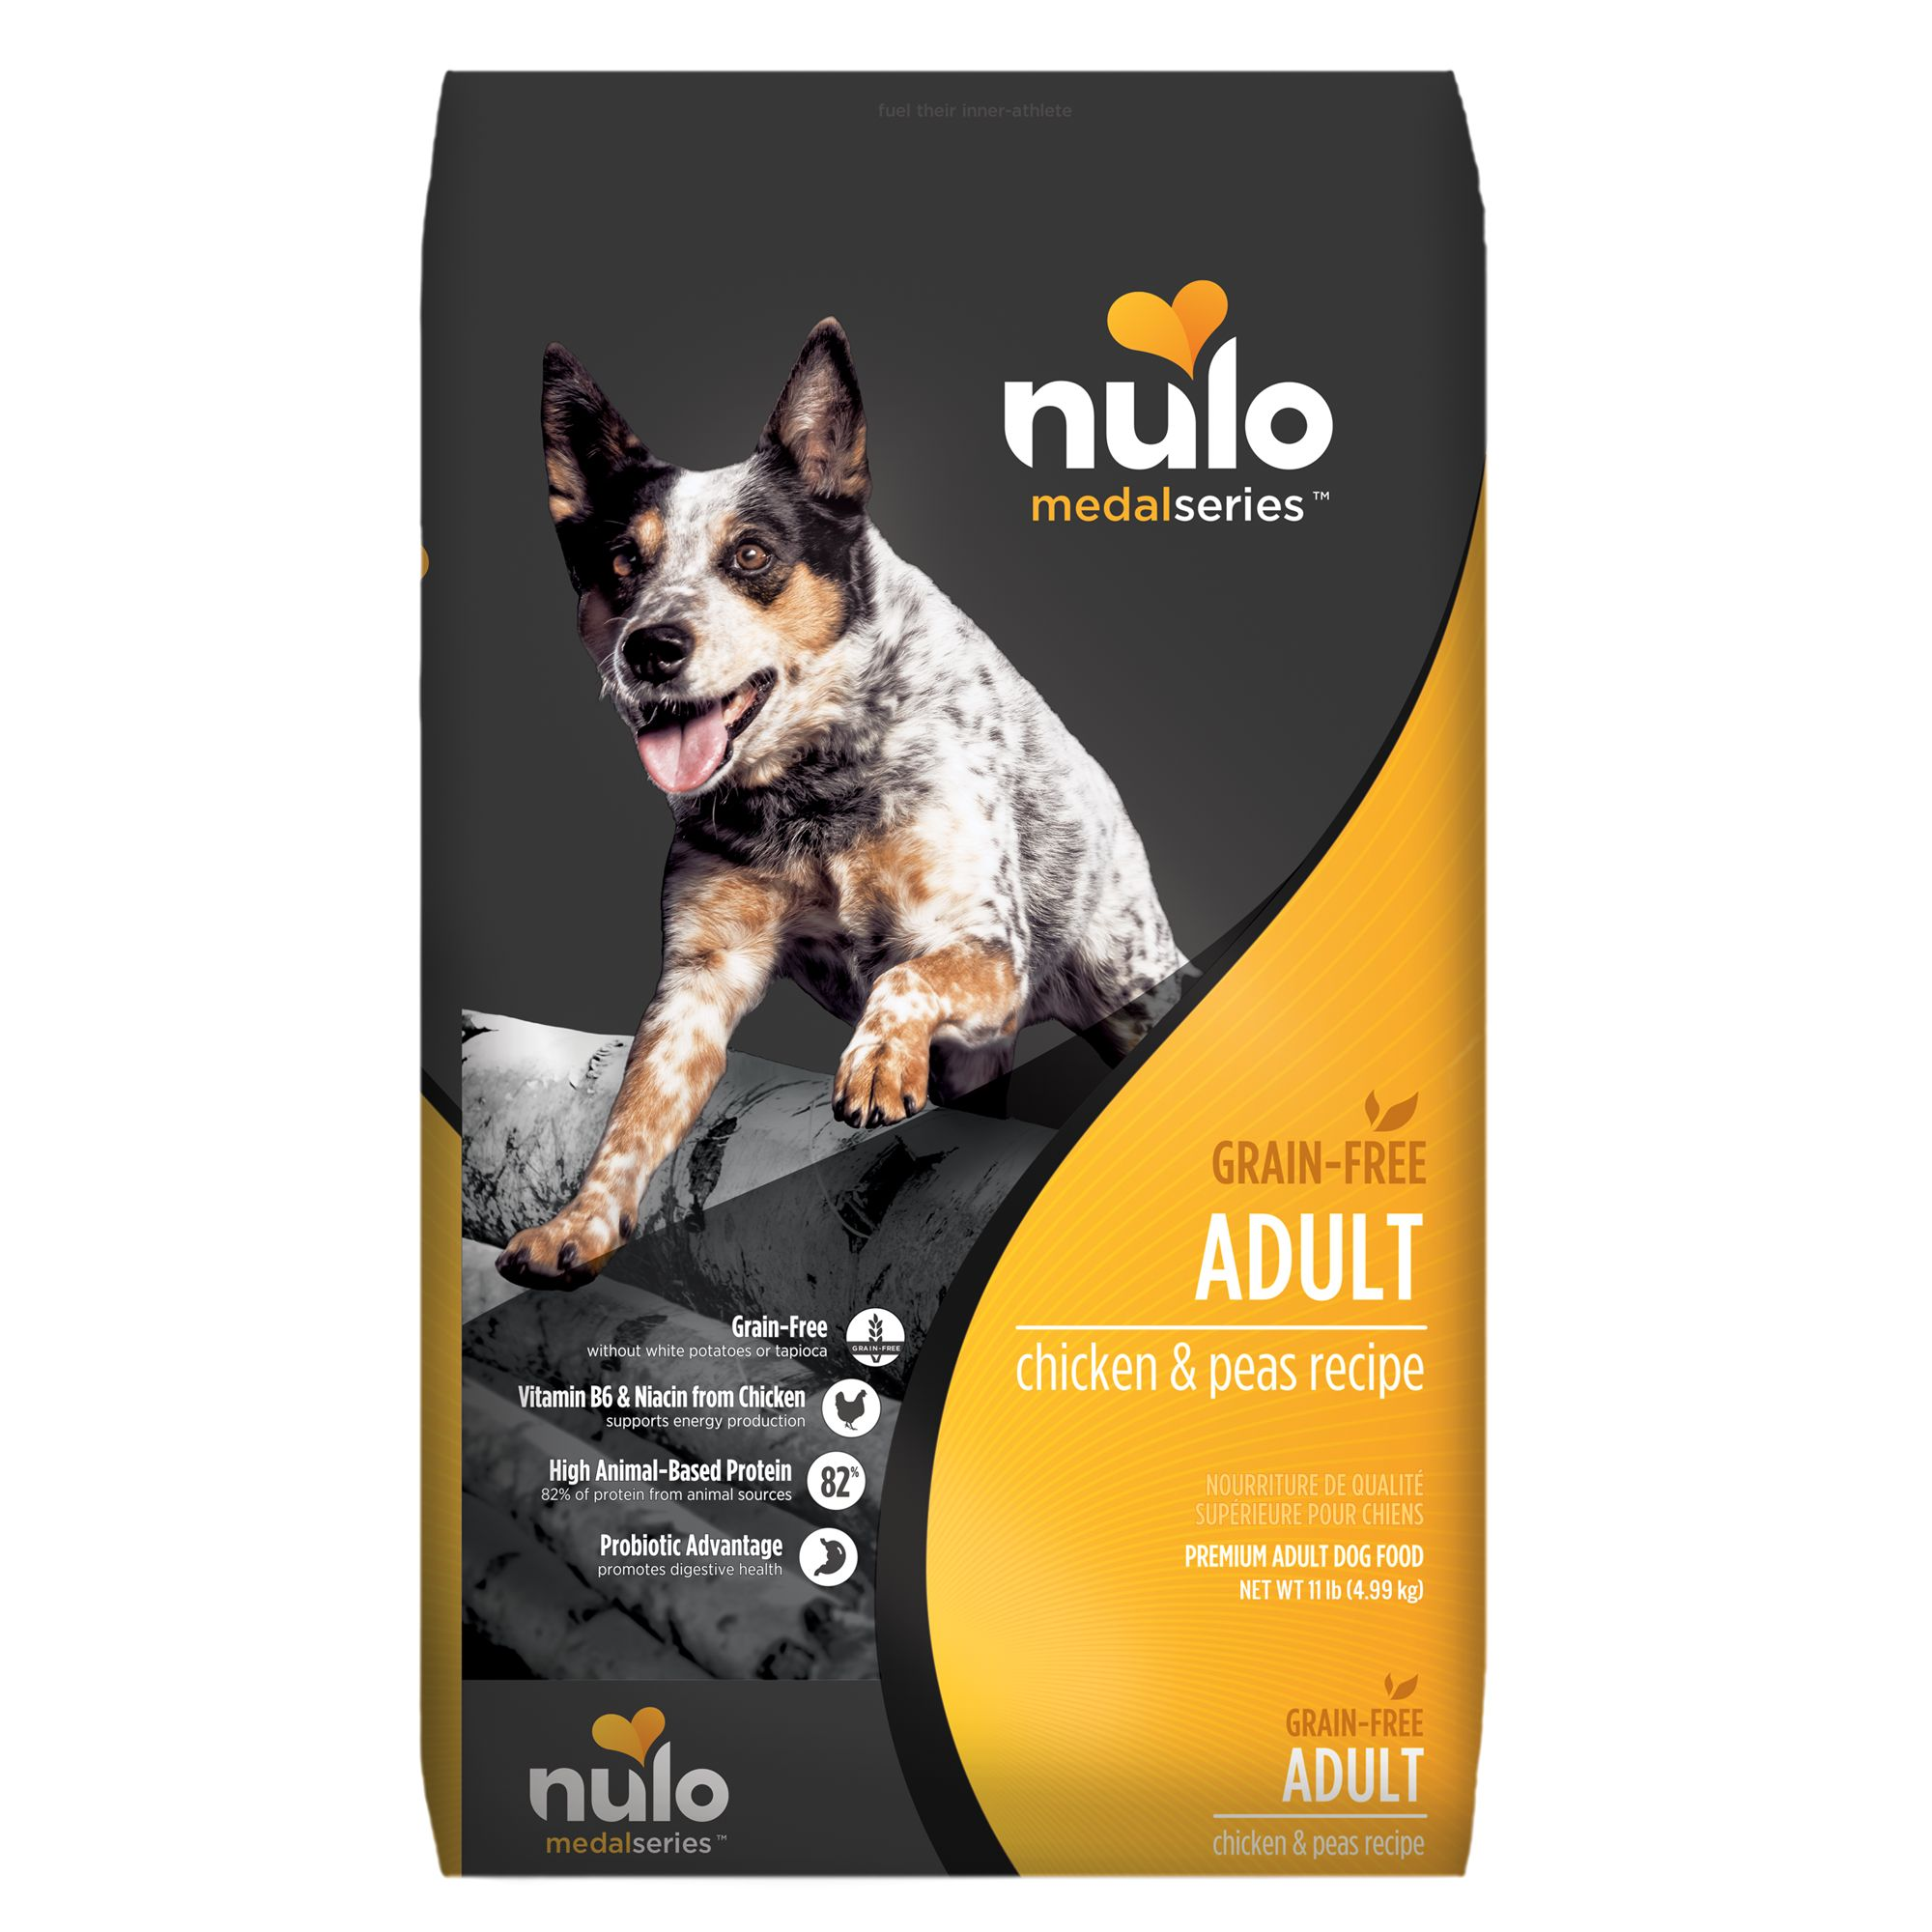 Nulo Medalseries Adult Dog Food Grain Free Size 11 Lb